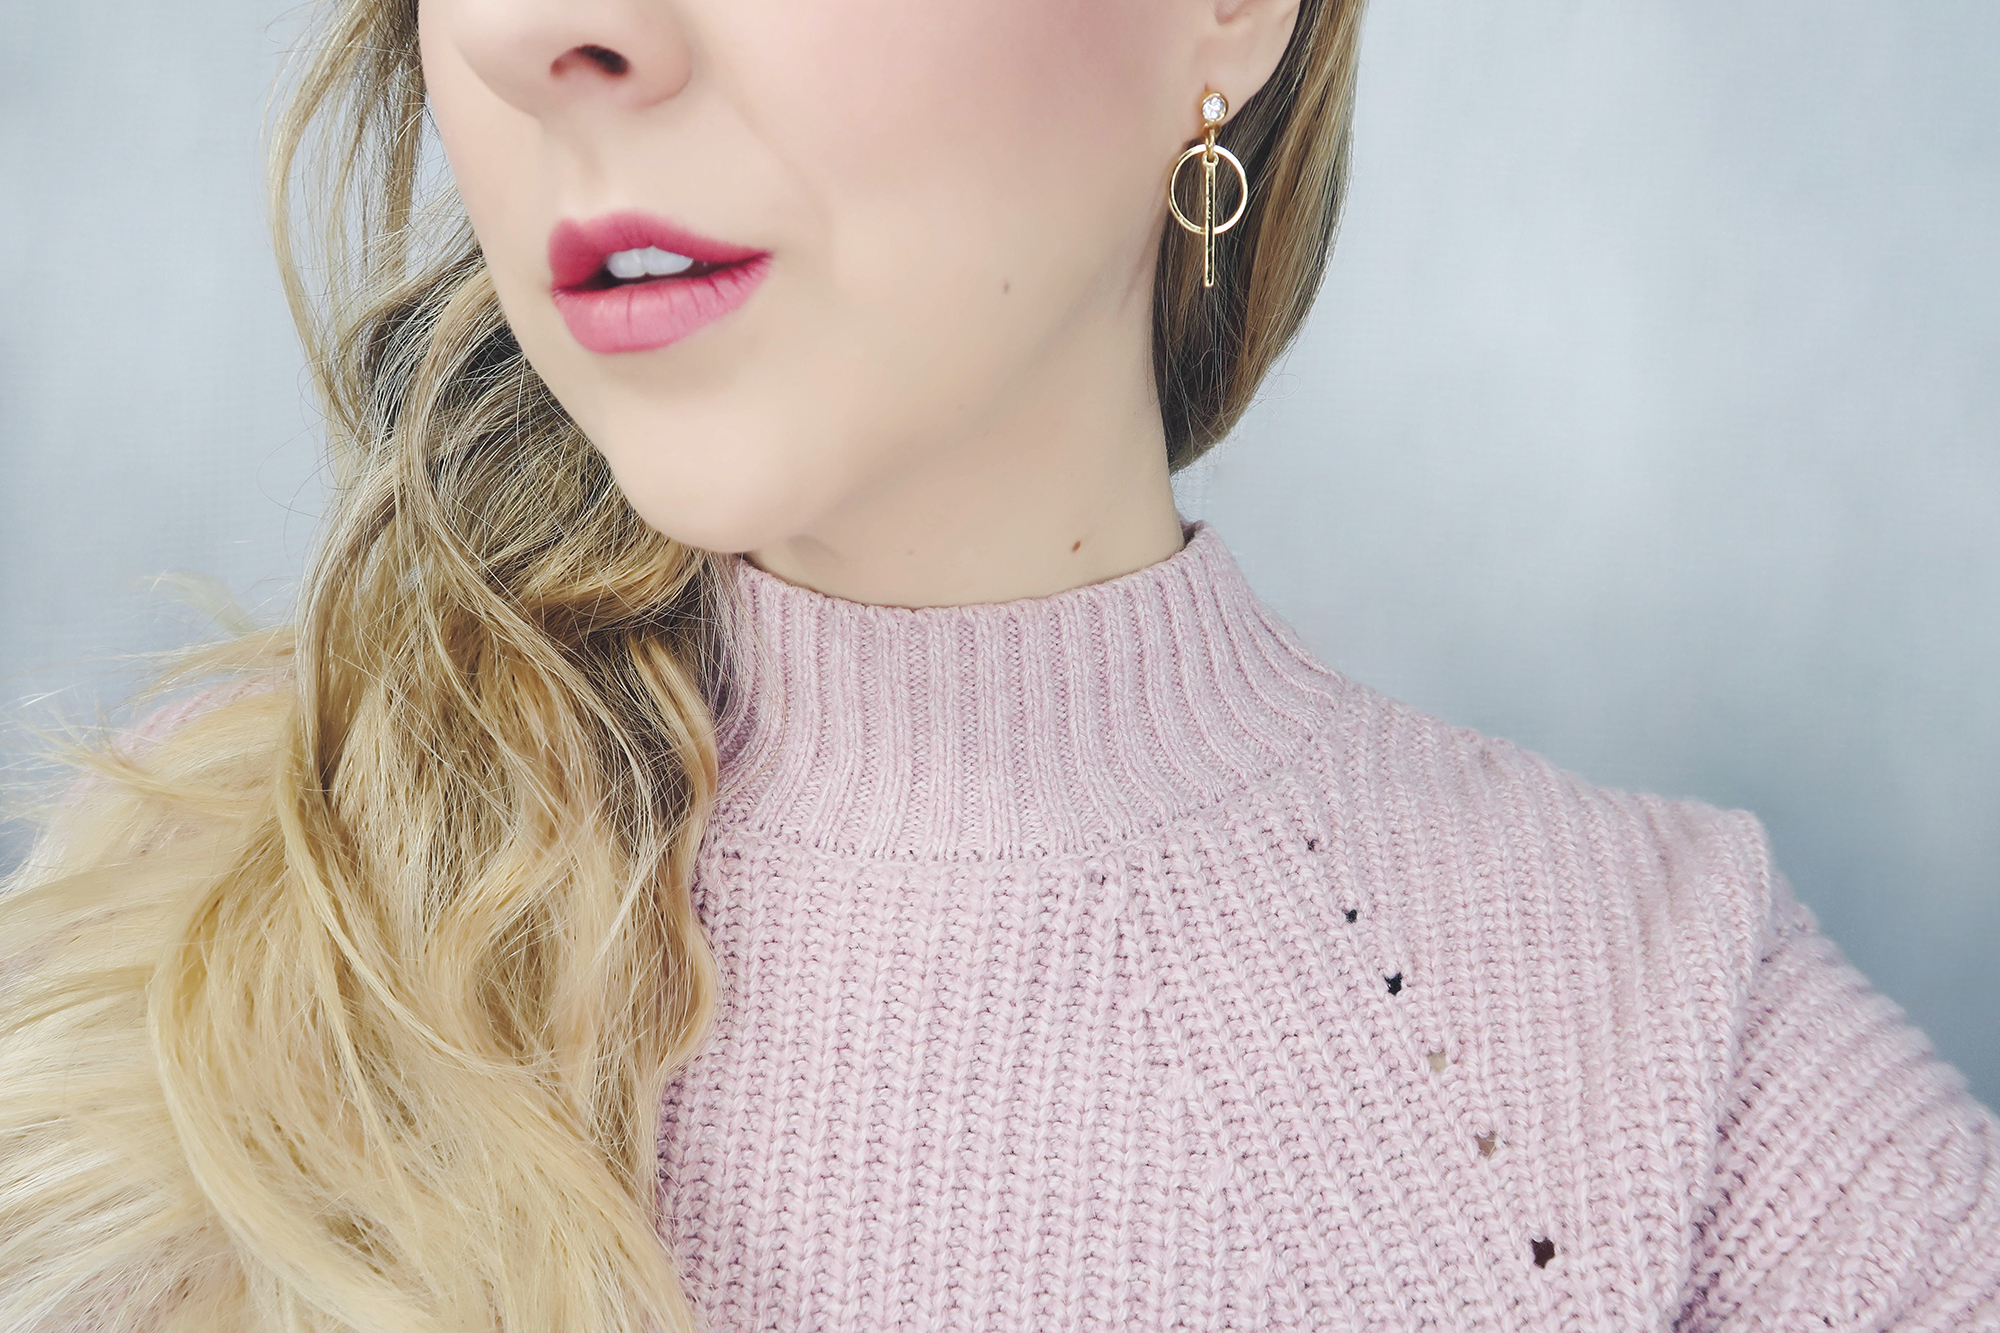 Fun Earrings, Halifax Blogger, Kayla Short